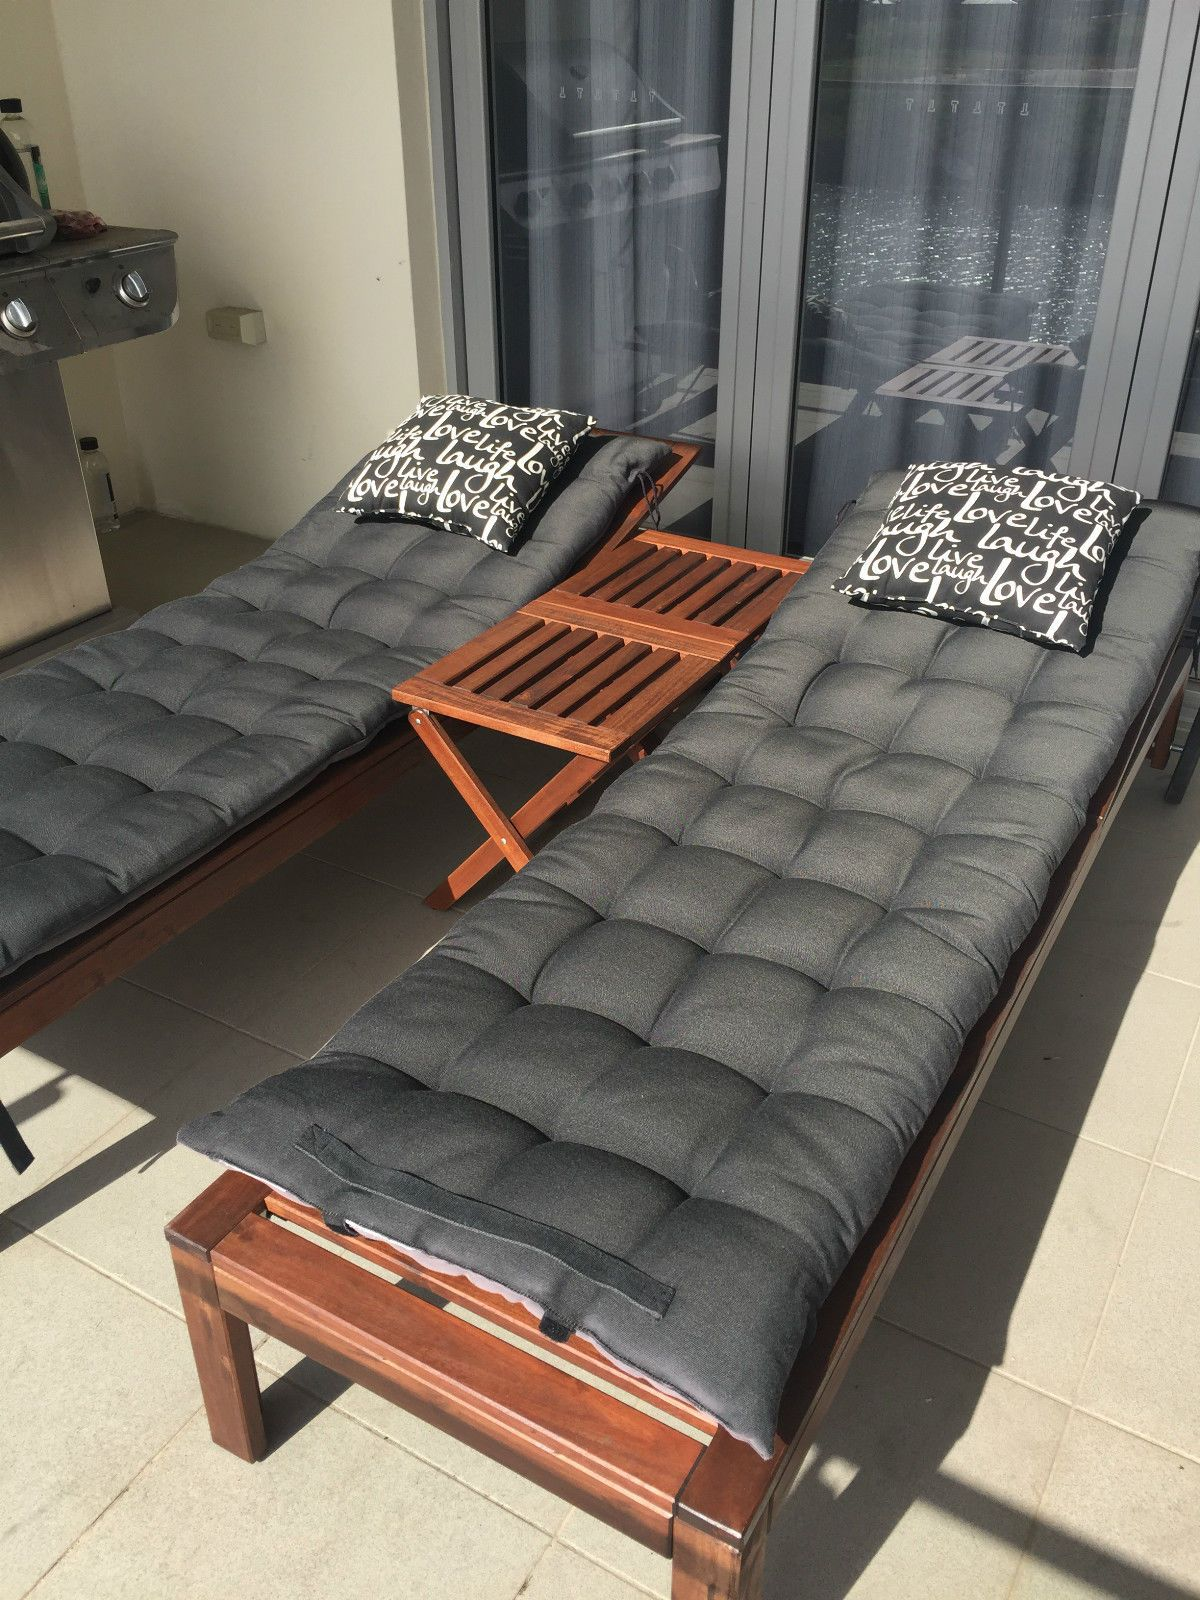 IKEA SET OF 2 APPLARO ACACIA WOOD SUN LOUNGERS INCL BONUS